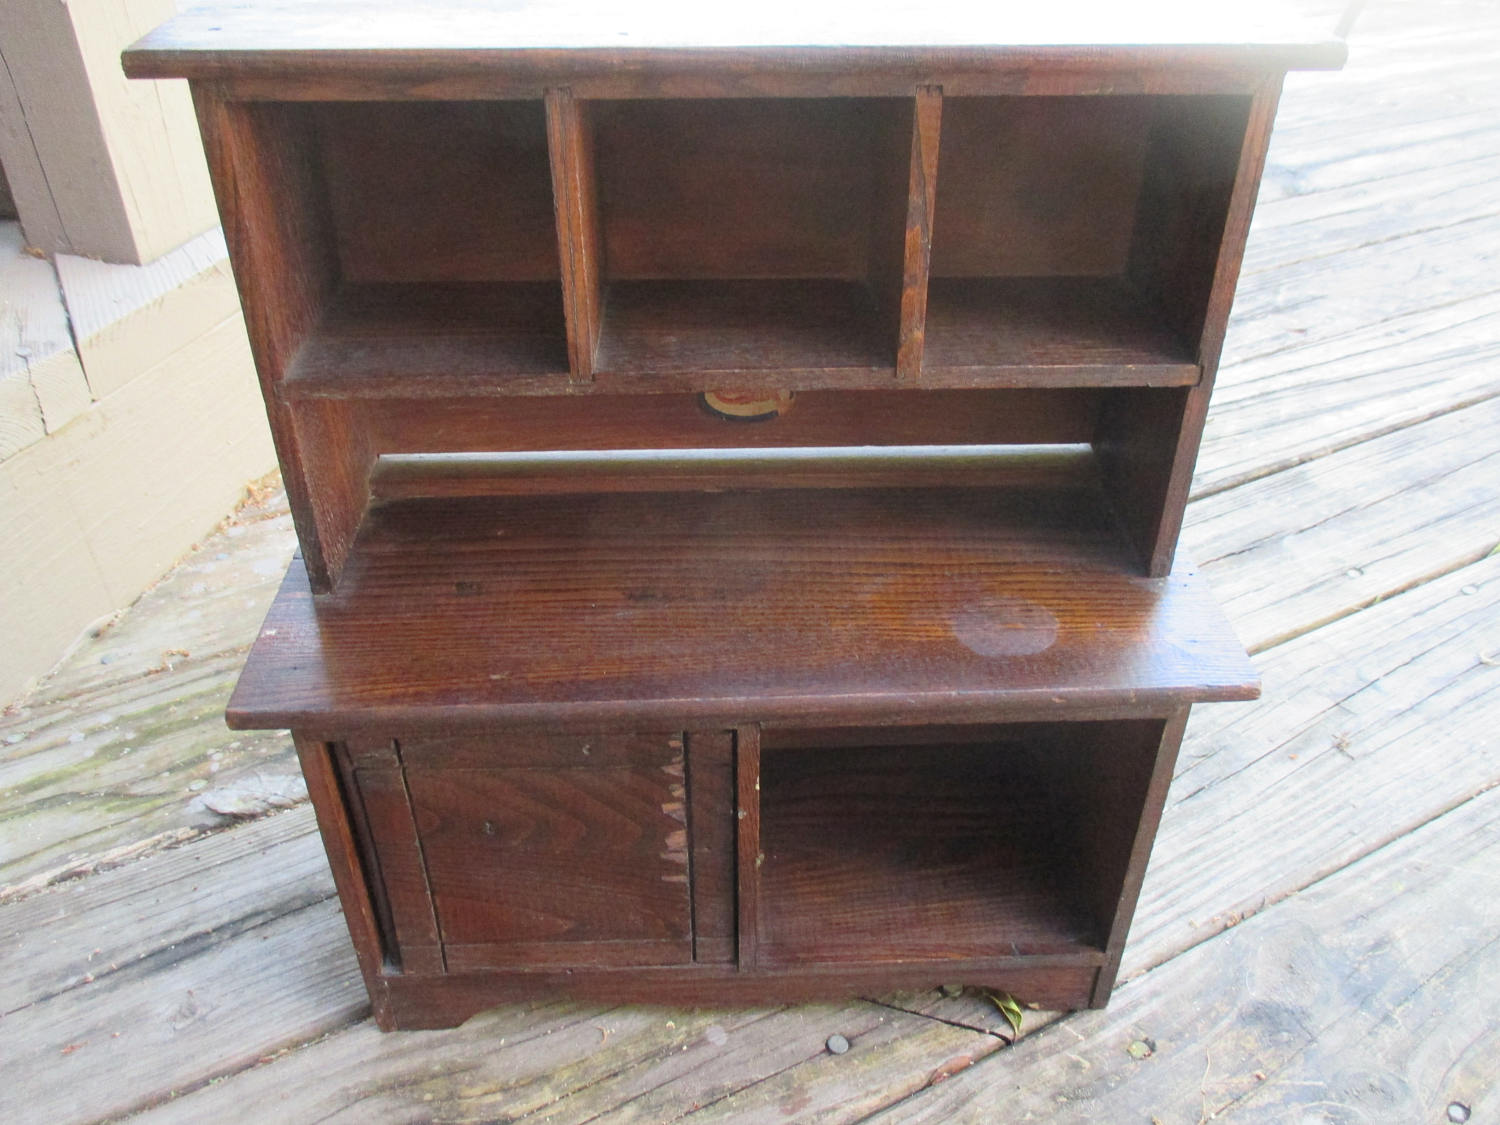 Vintage kitchen hutch cabinet Cass Toys Wooden Miniature home collectible  wood cupboard sideboard rustic primitive farmhouse - Vintage Kitchen Hutch Cabinet Cass Toys Wooden Miniature Home